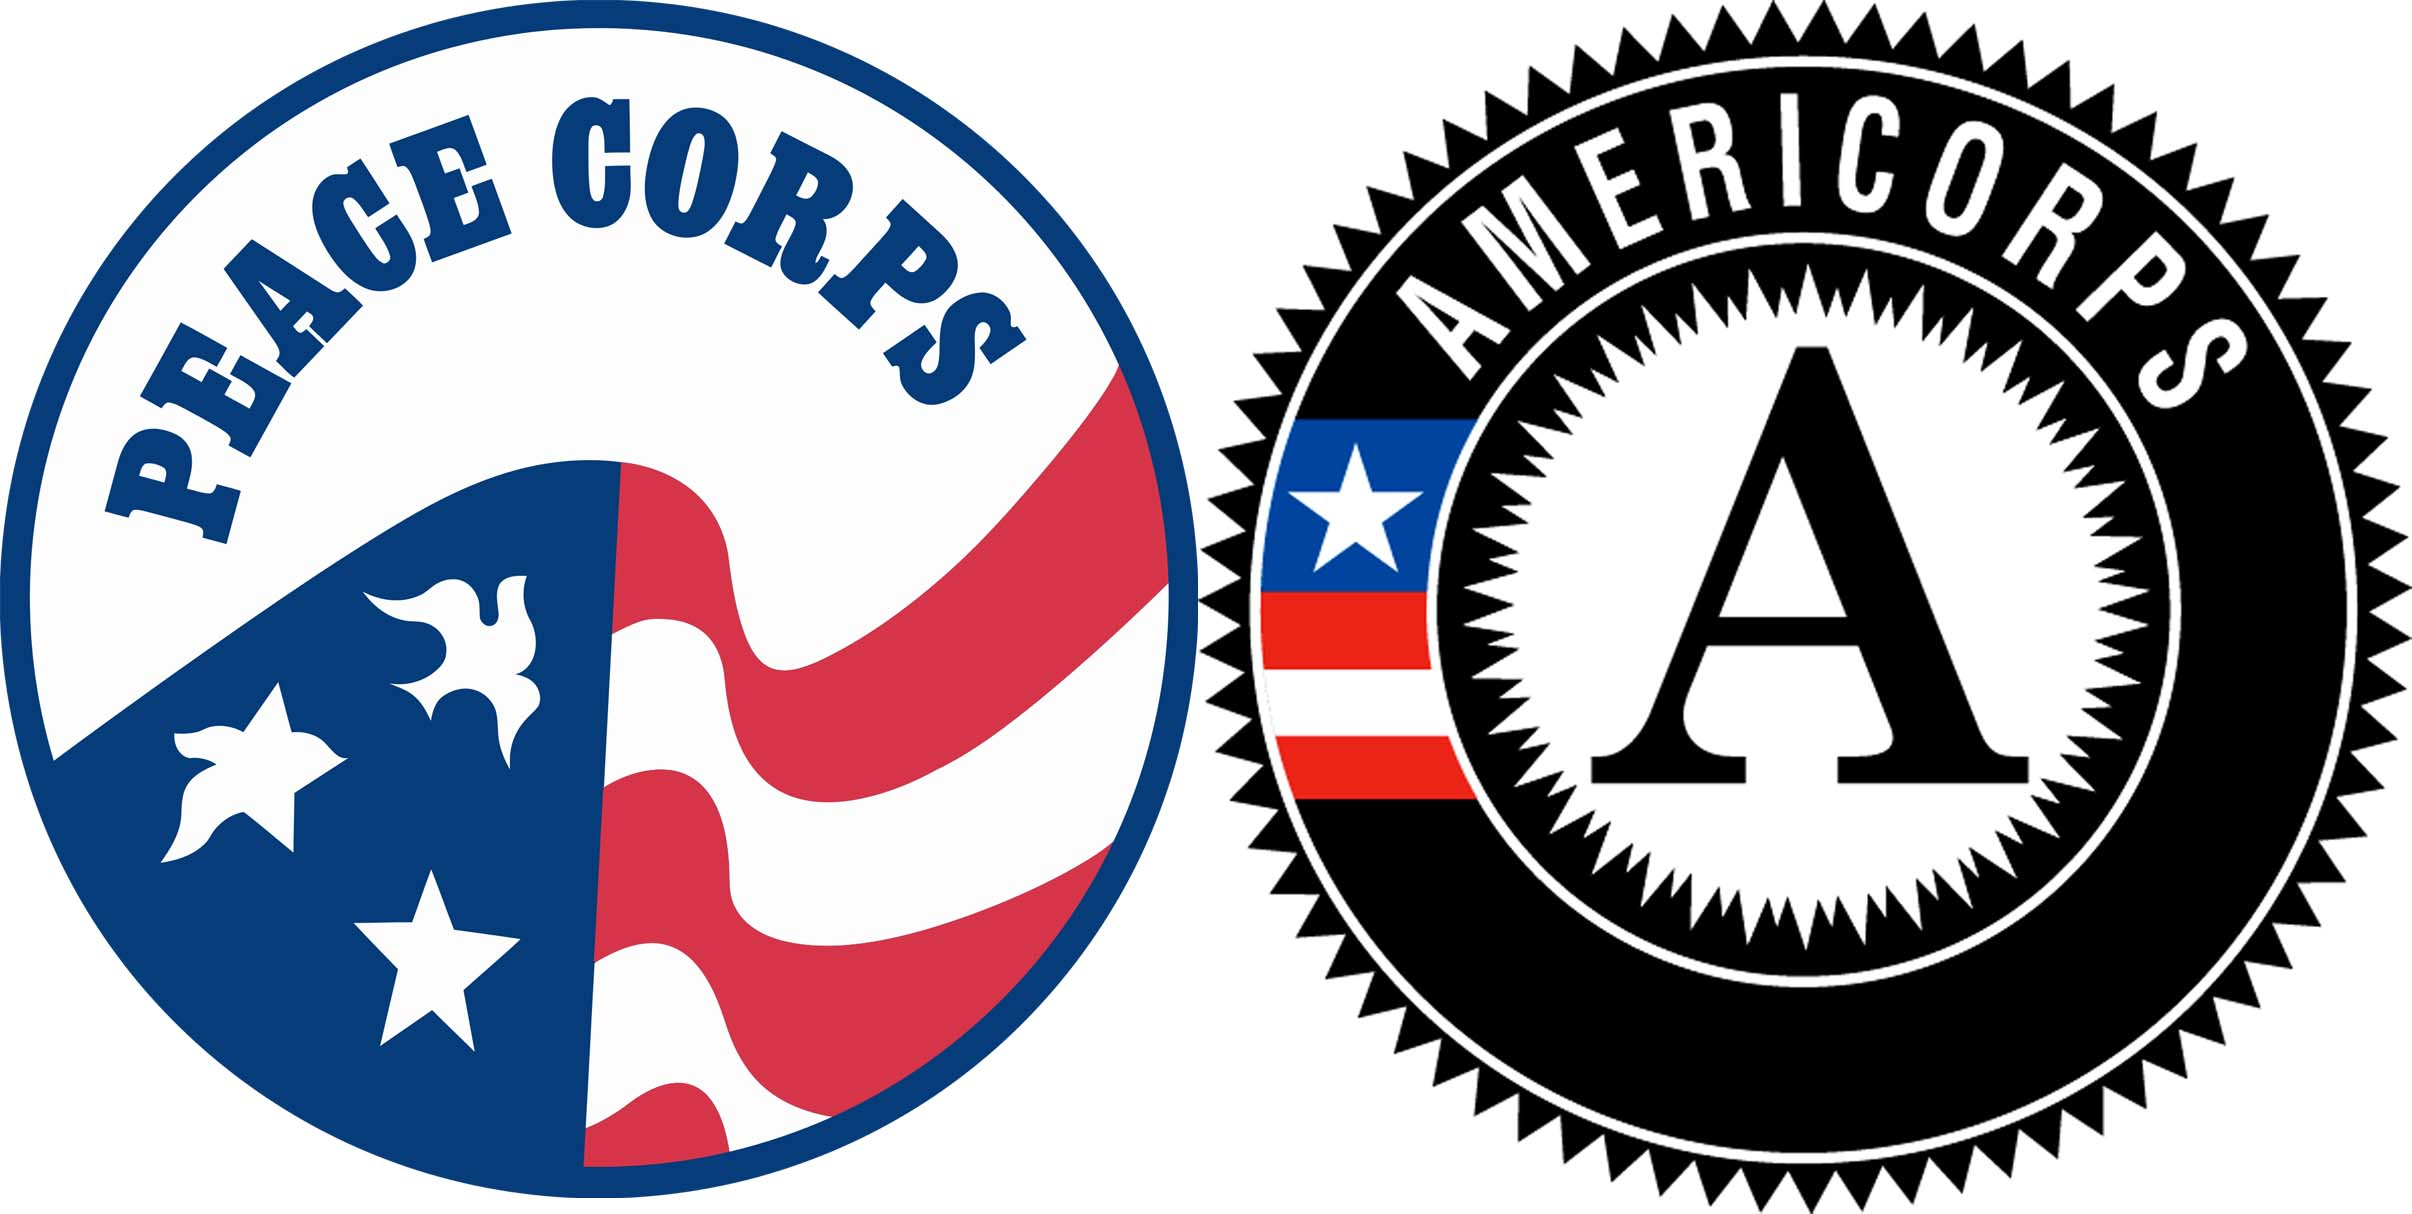 Logos of the Peace Corps and Americorps side by side